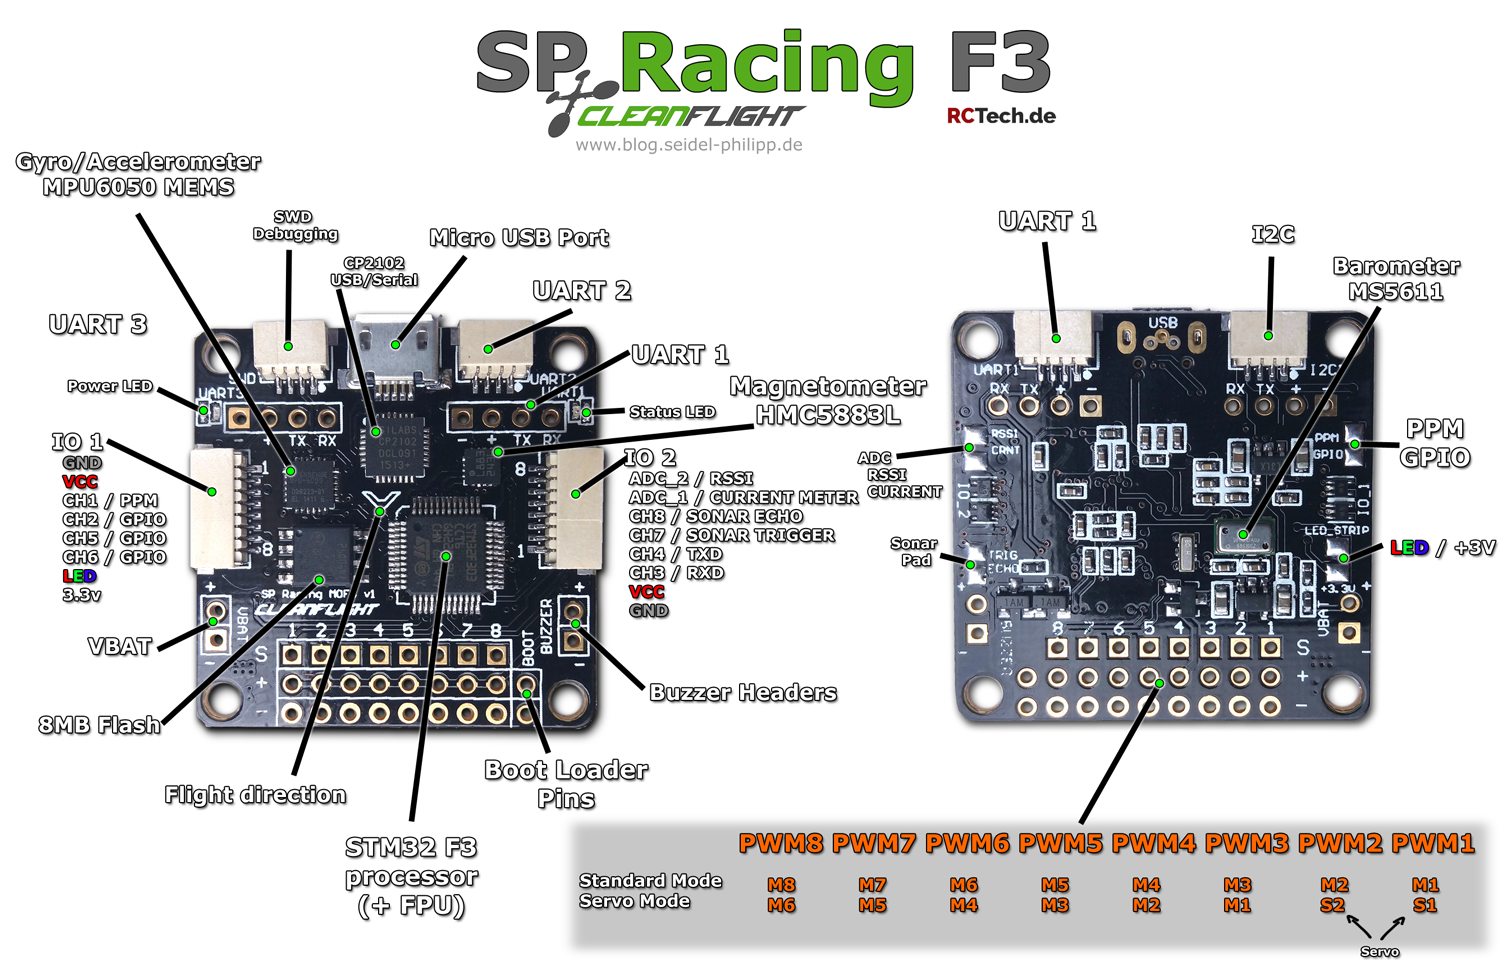 Flysky Cc3d Wiring Free Diagram For You Kk2 Flight Controller Sp Racing F3 Pinlayout Und Anschlussplan Manual